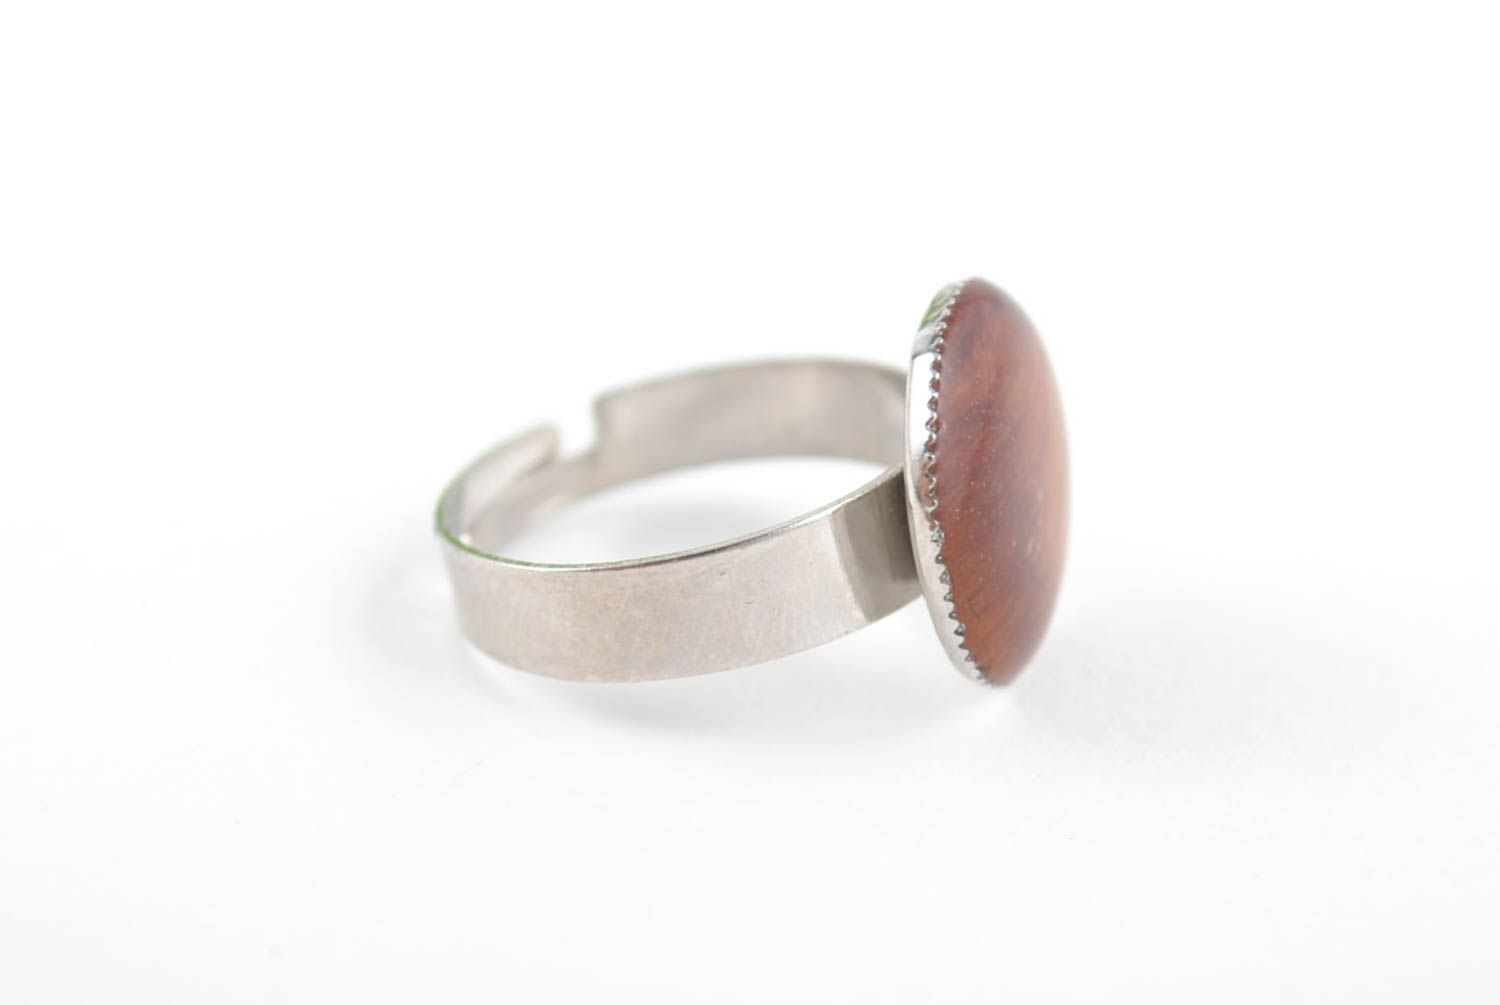 Round-shaped handmade stylish brown ring with epoxy resin adjustable size photo 4